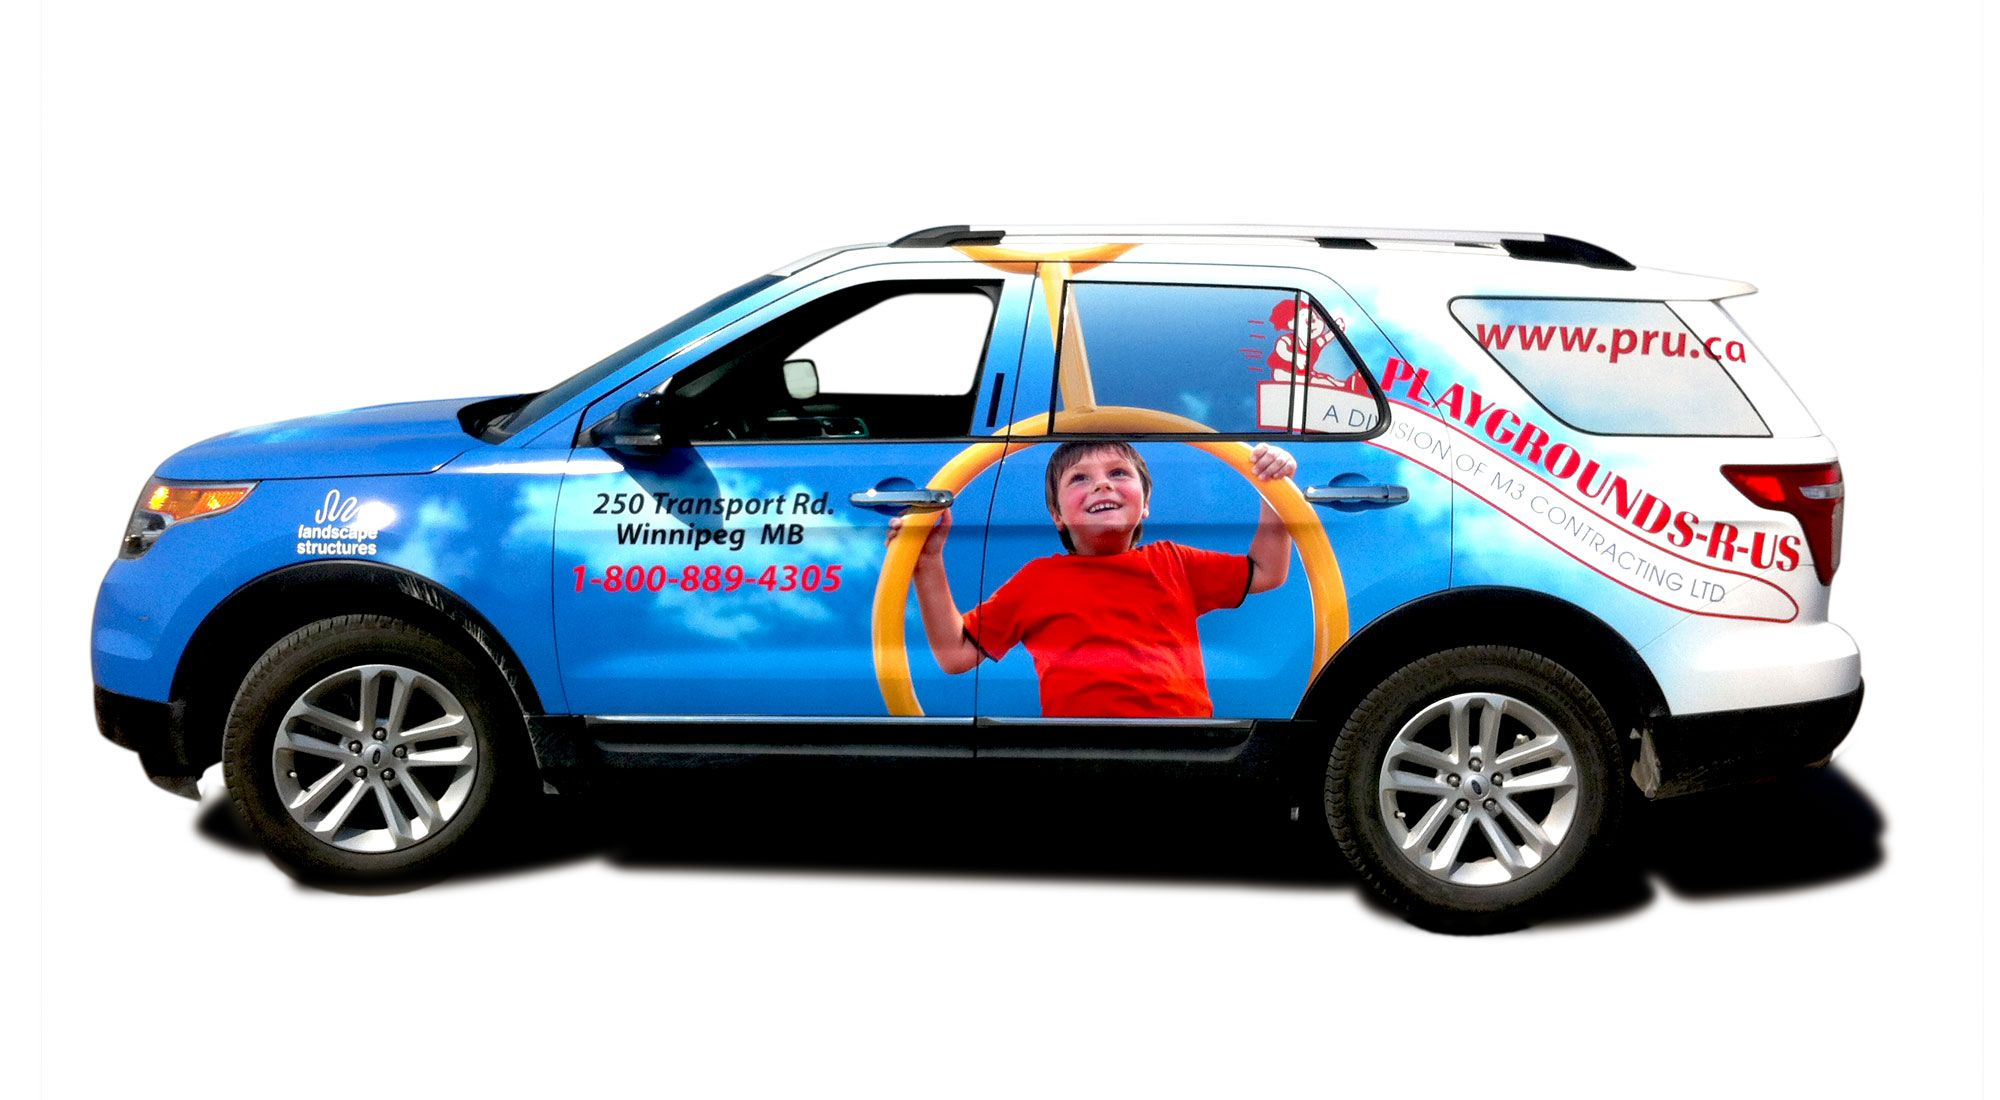 Pin By Intergraphics Decal Ltd On Vehicle Wraps Car Wrap Toy Car Car Decals [ 1100 x 2000 Pixel ]